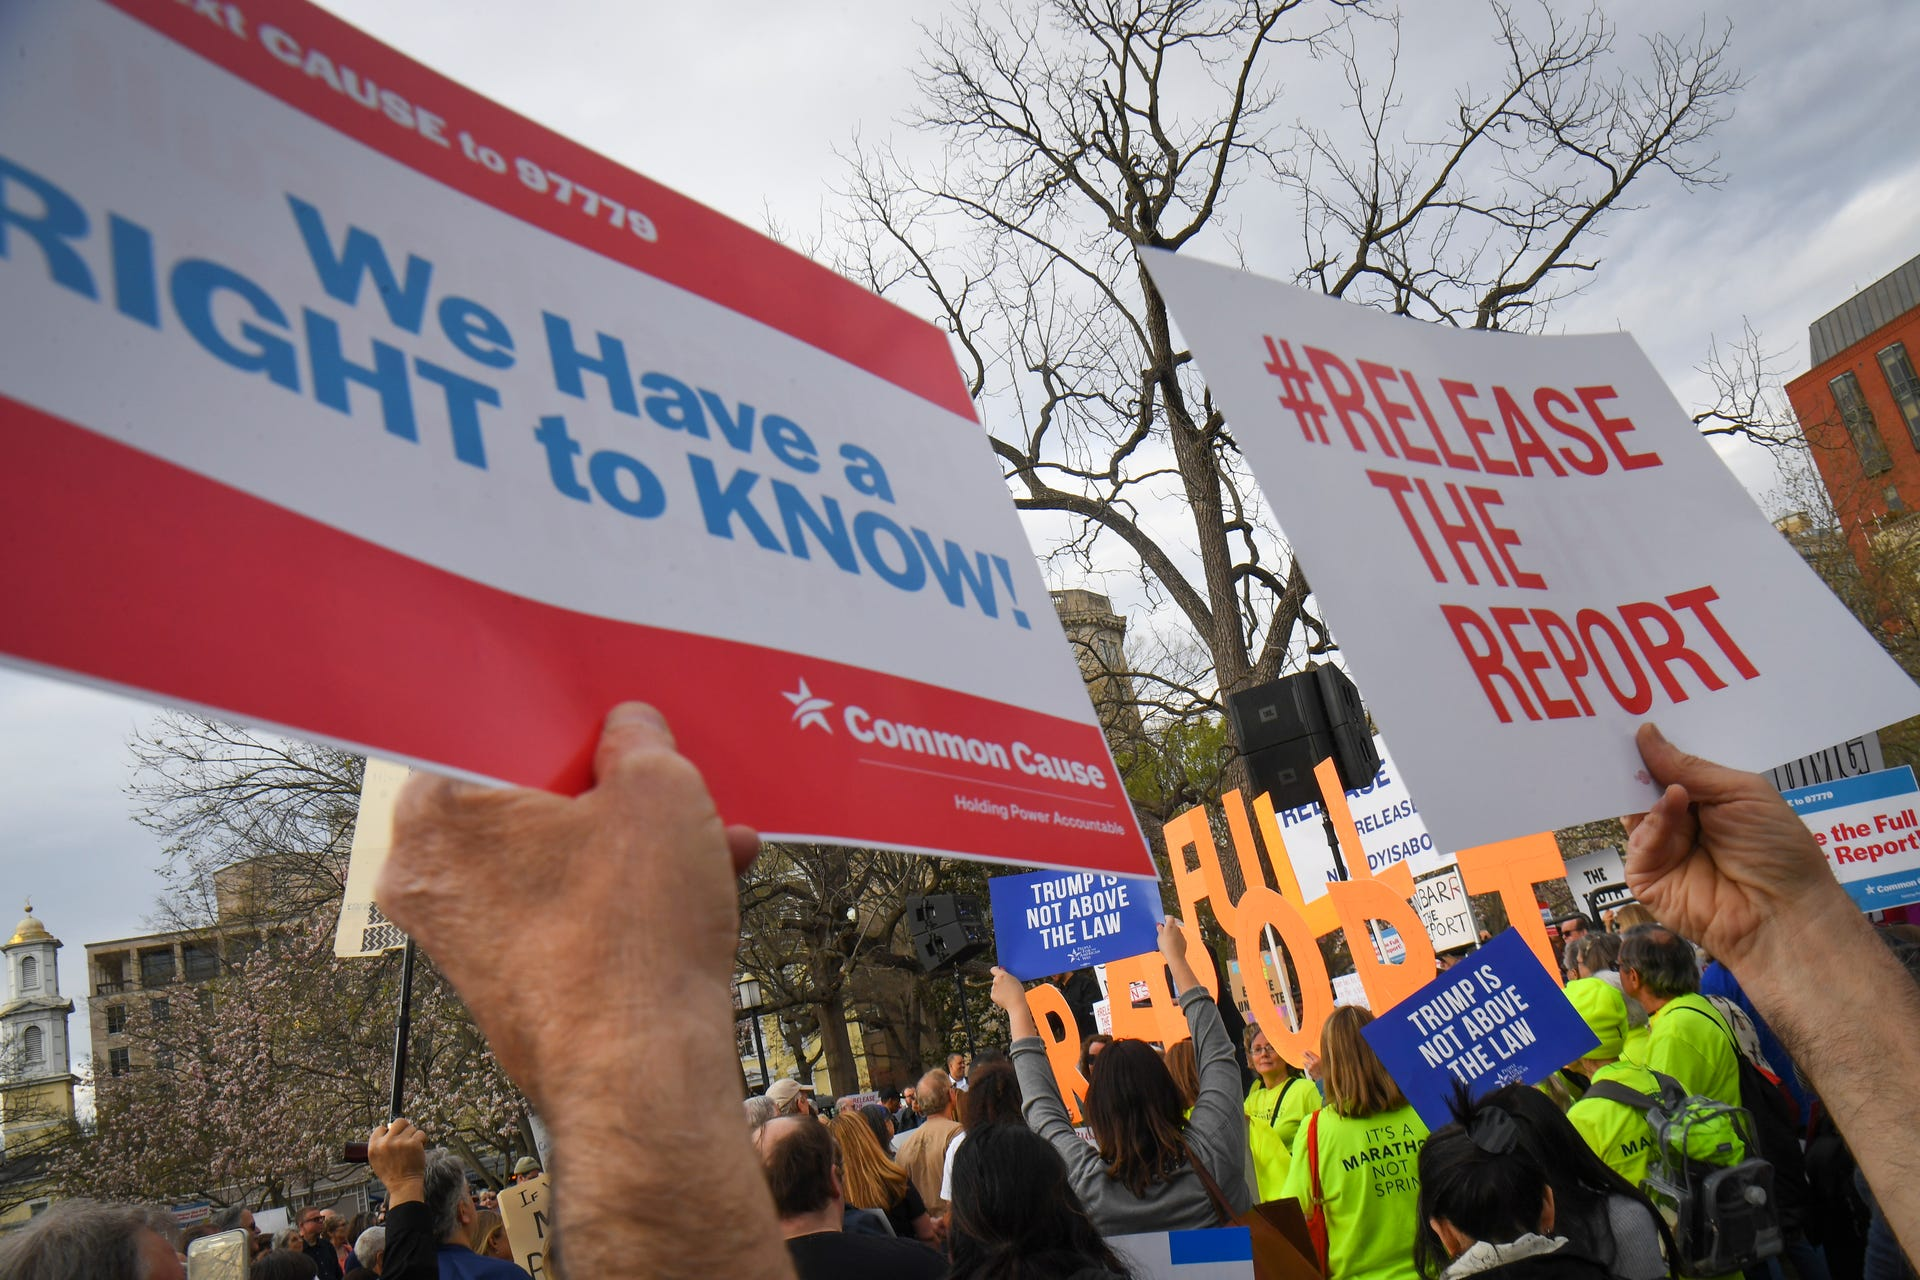 Rallies demand that the Mueller report be released